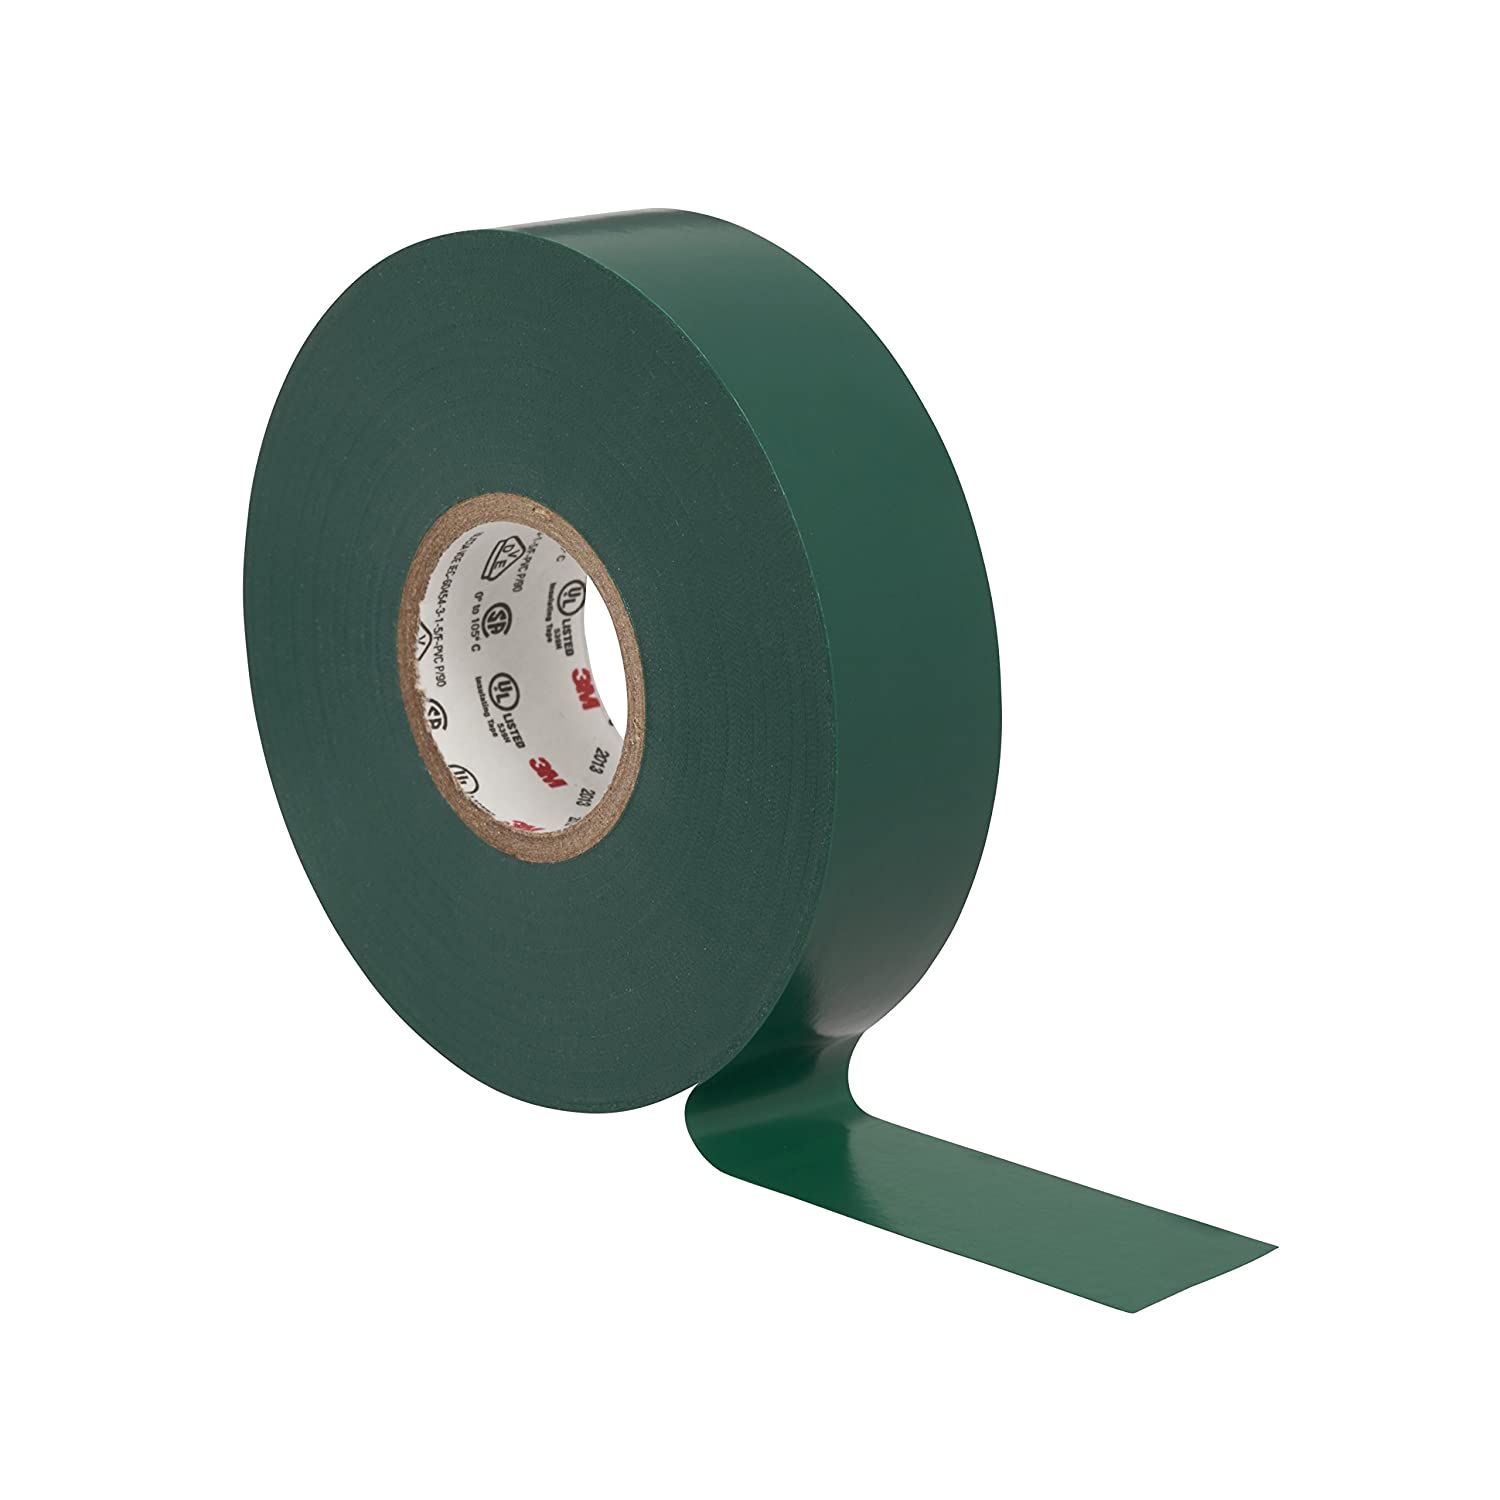 3M Scotch #35 Electrical Tape 10851-BA-10 Gr 3//4-Inch by 66-Foot by 0.007-Inch